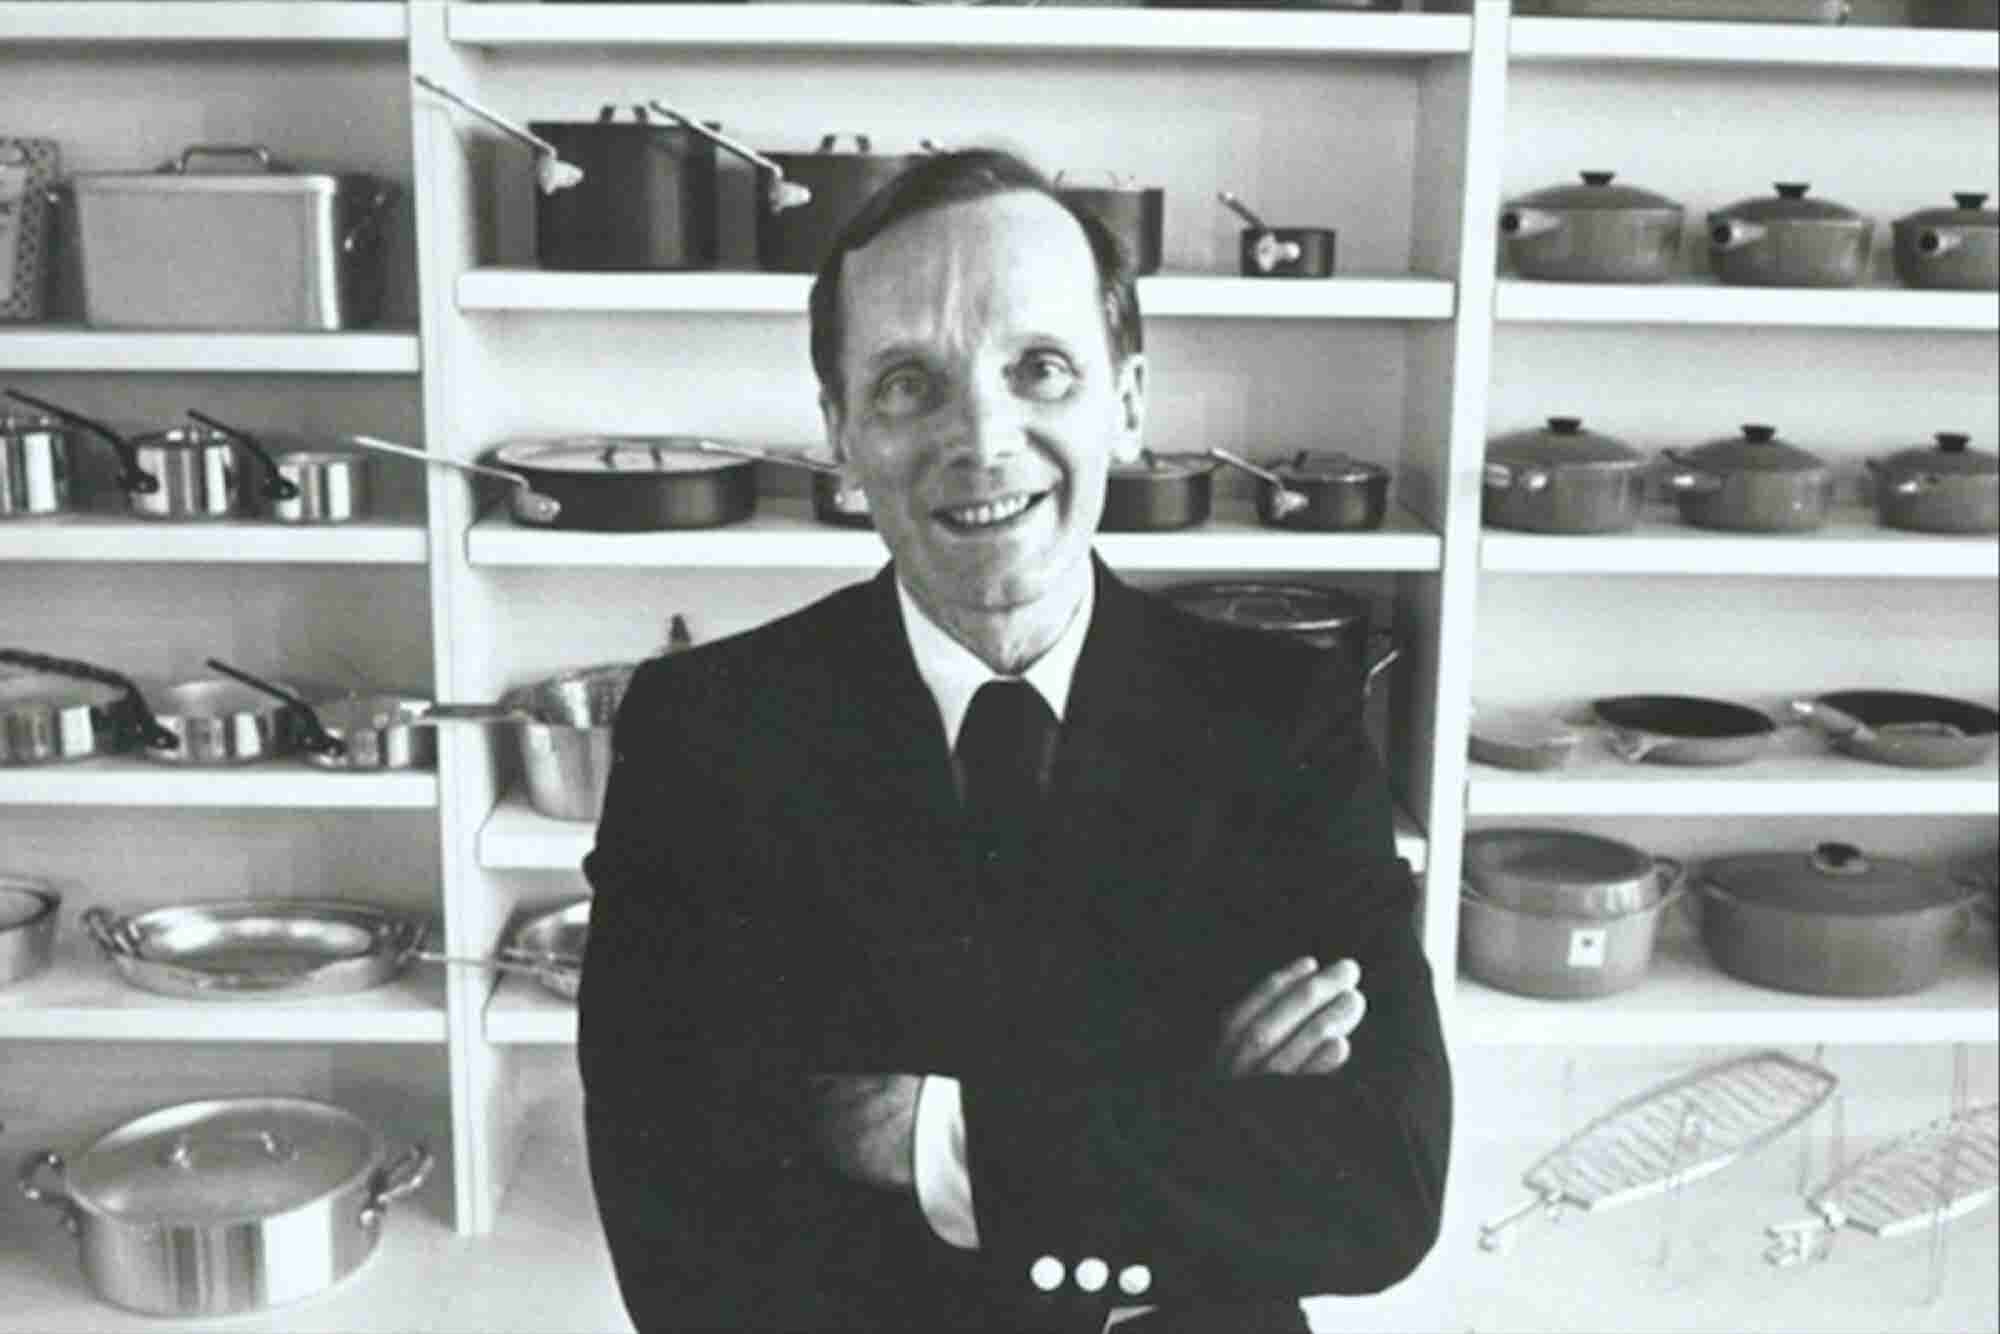 Remembering Chuck Williams, Founder of Williams-Sonoma